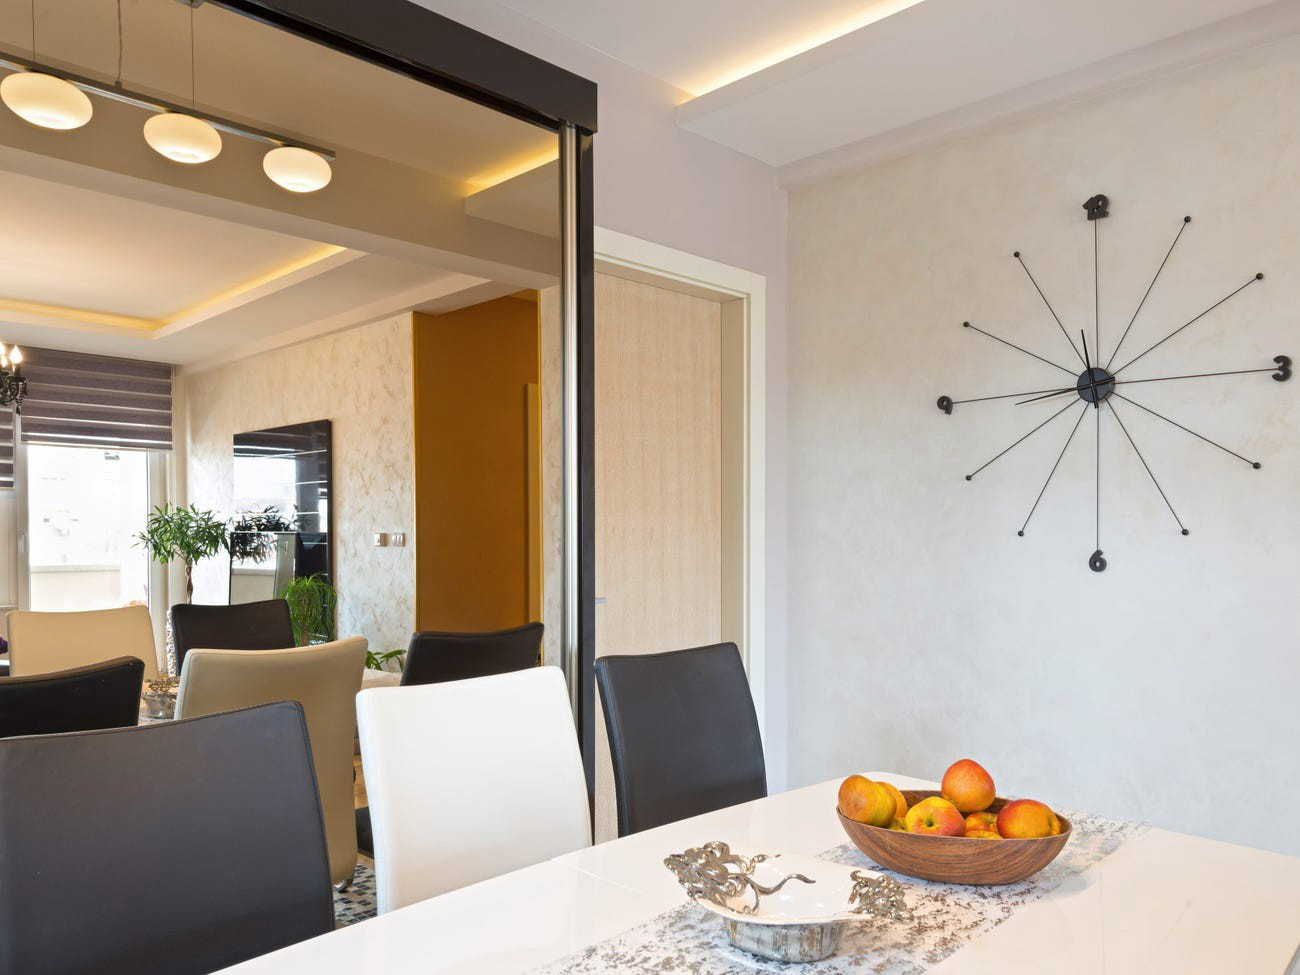 A dining room with a mirrored wall.